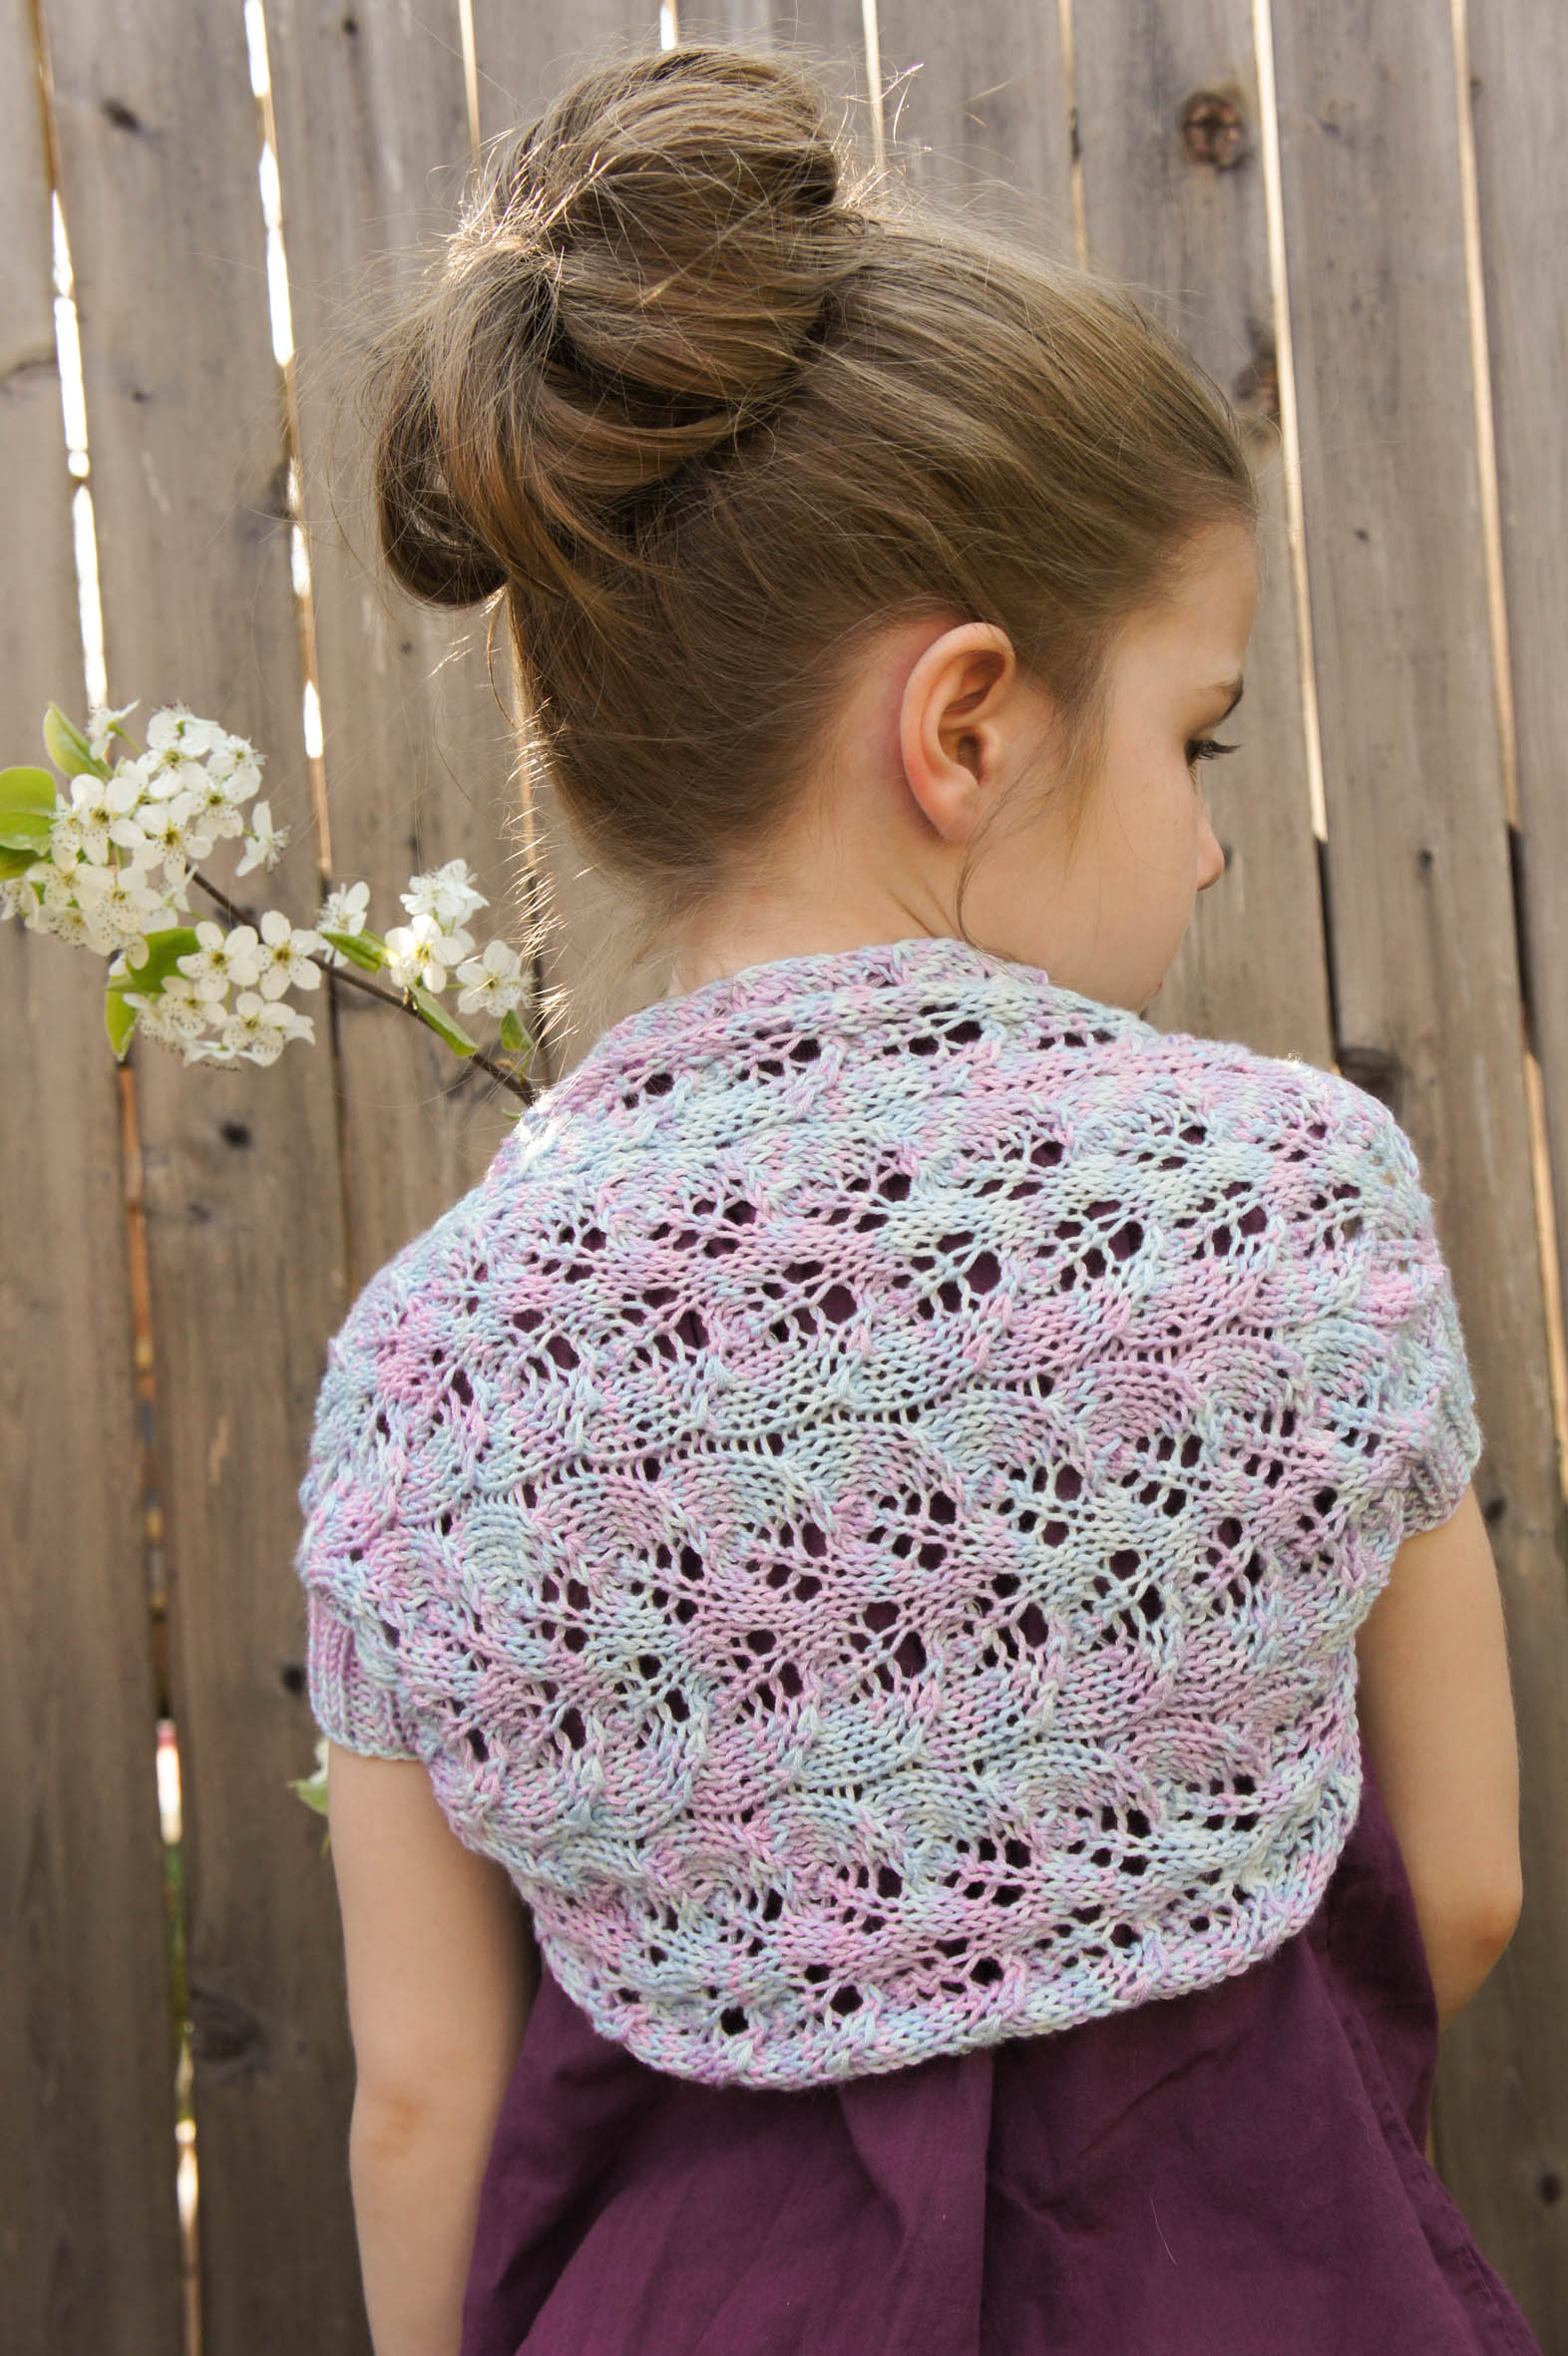 Bolero Shrug Knitting Patterns Free With Pictures : Brynna s Shrug TanisKnits